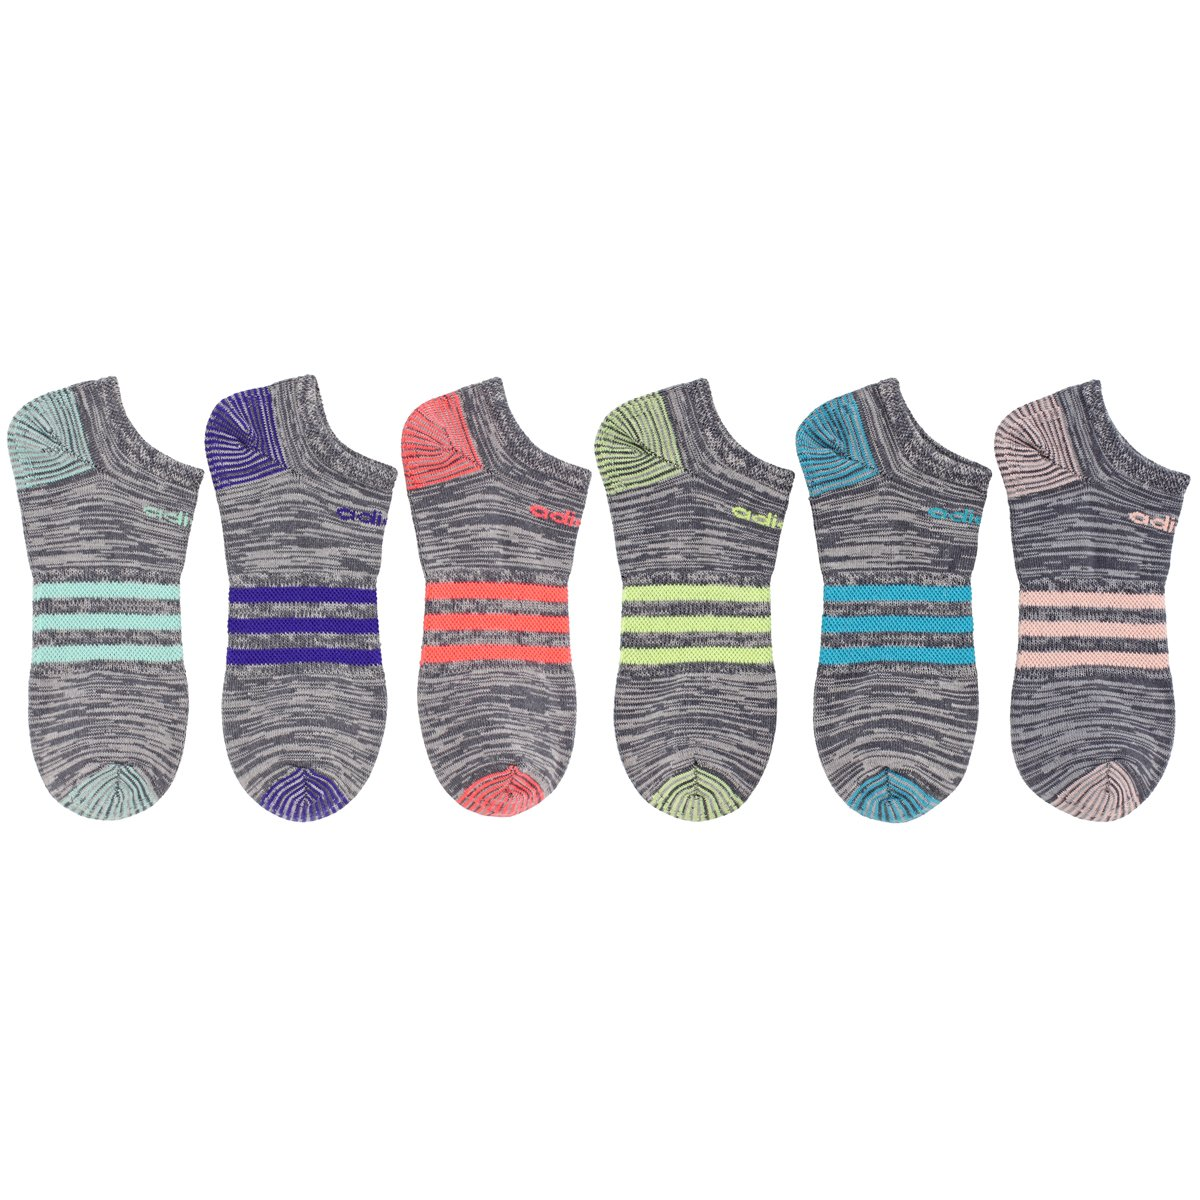 adidas Women's Superlite 6-Pack No Show Socks, Onix Clear Onix Space/Easy Green/Energy Ink Blue/Lucid Red/Frozen Yellow/Energy Blue/Haze Coral,Women's Sock size (5-10) by adidas (Image #5)